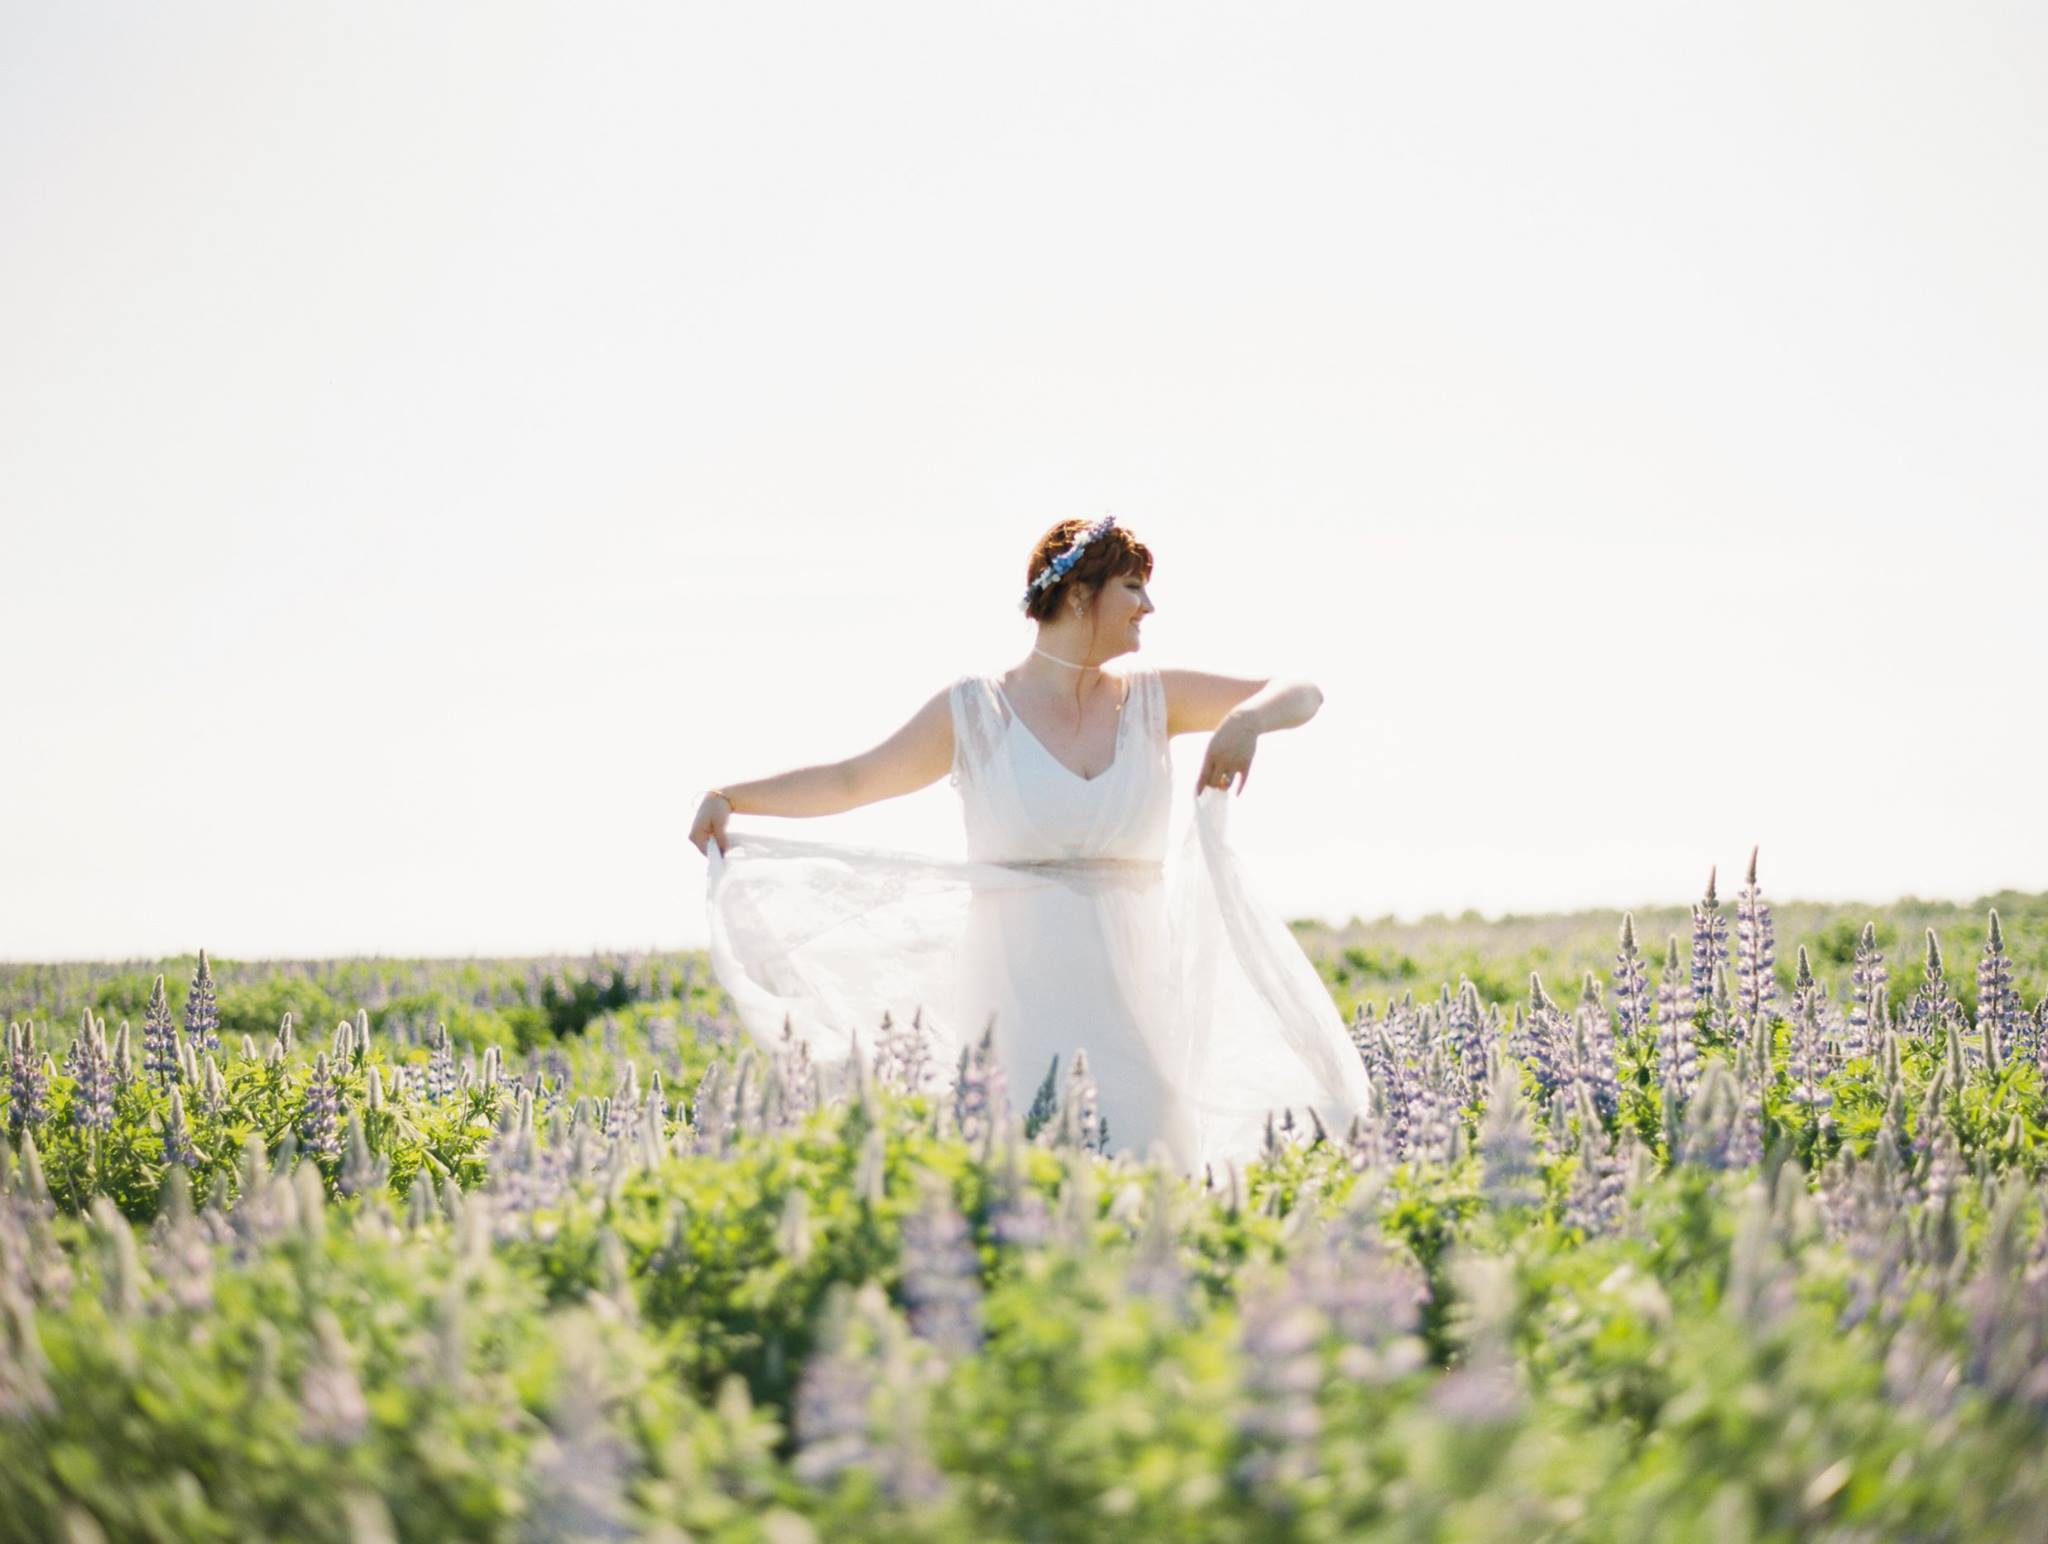 Lynzi | wedding gown by Charlie Brear available at Little White Dress Bridal Shop in Denver | Brumley & Wells Photography